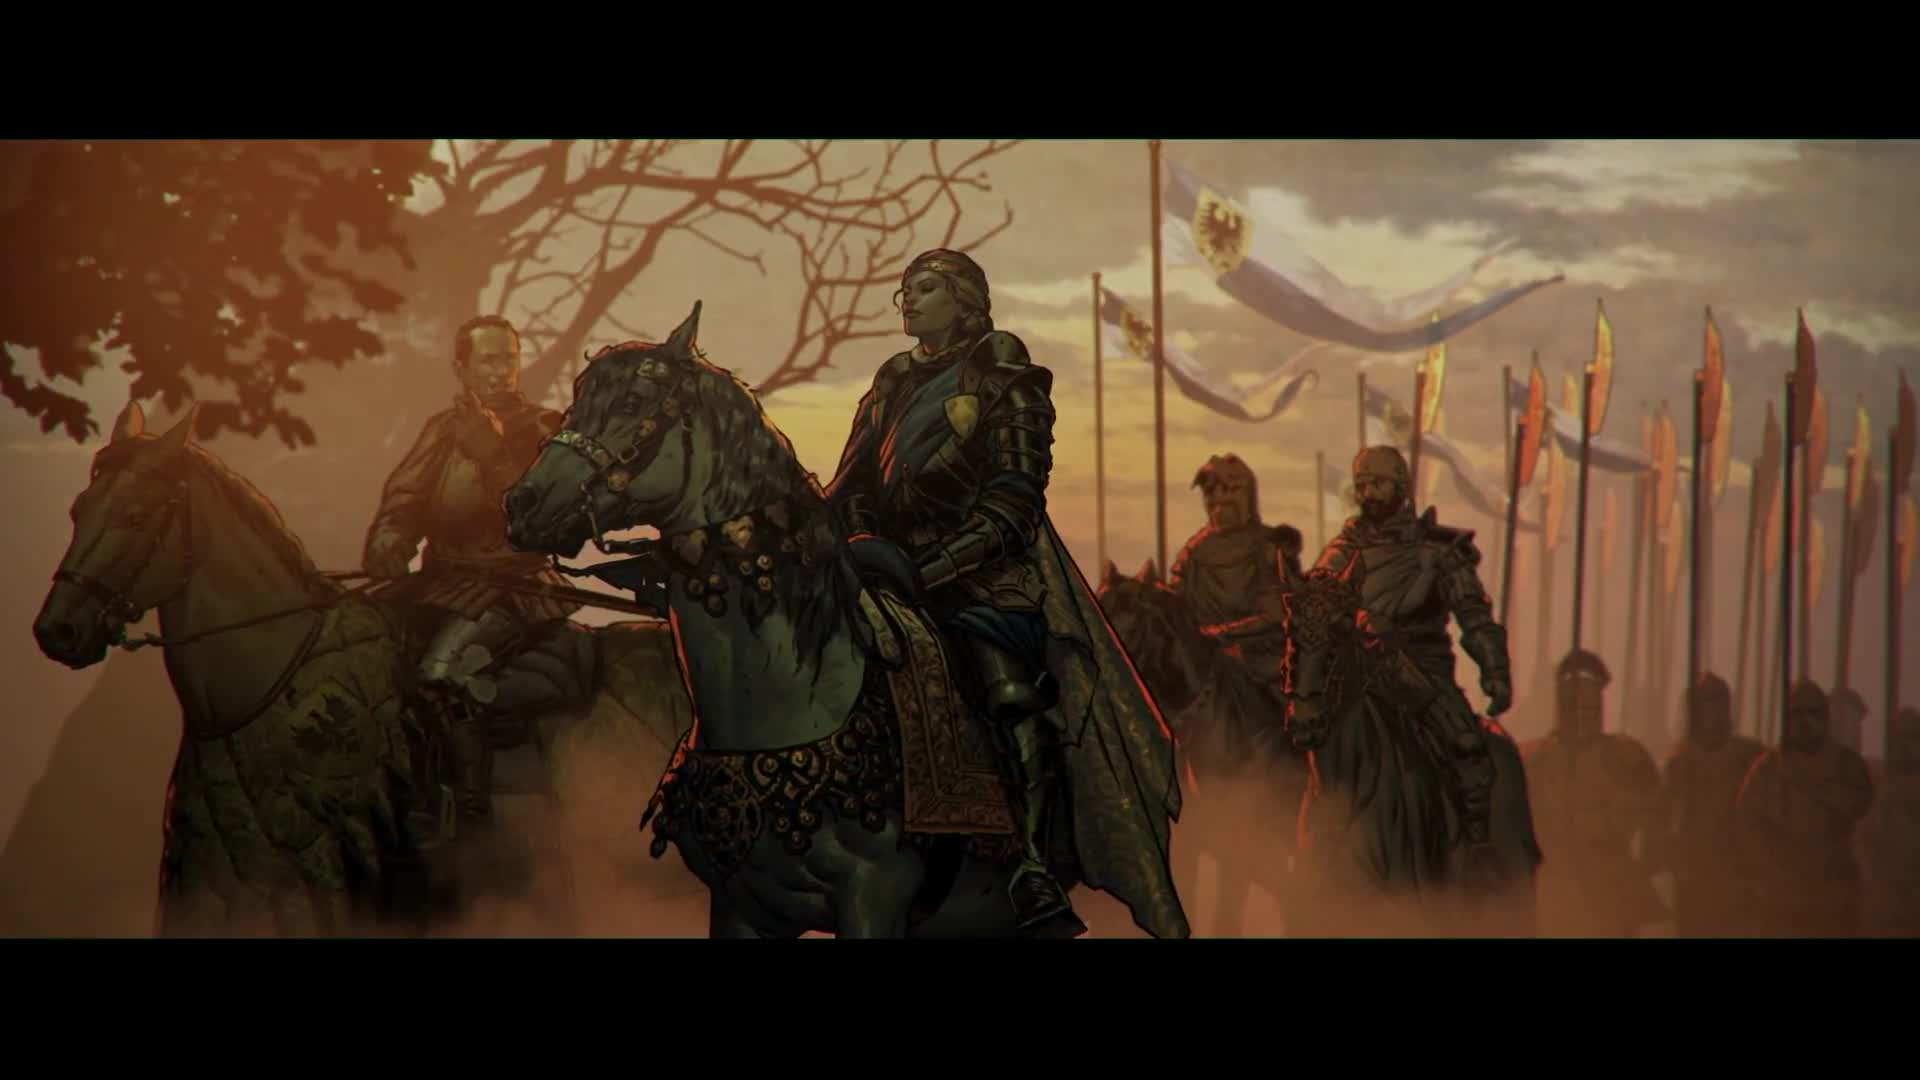 Thronebreaker: The Witcher Tales - Gameplay Trailer